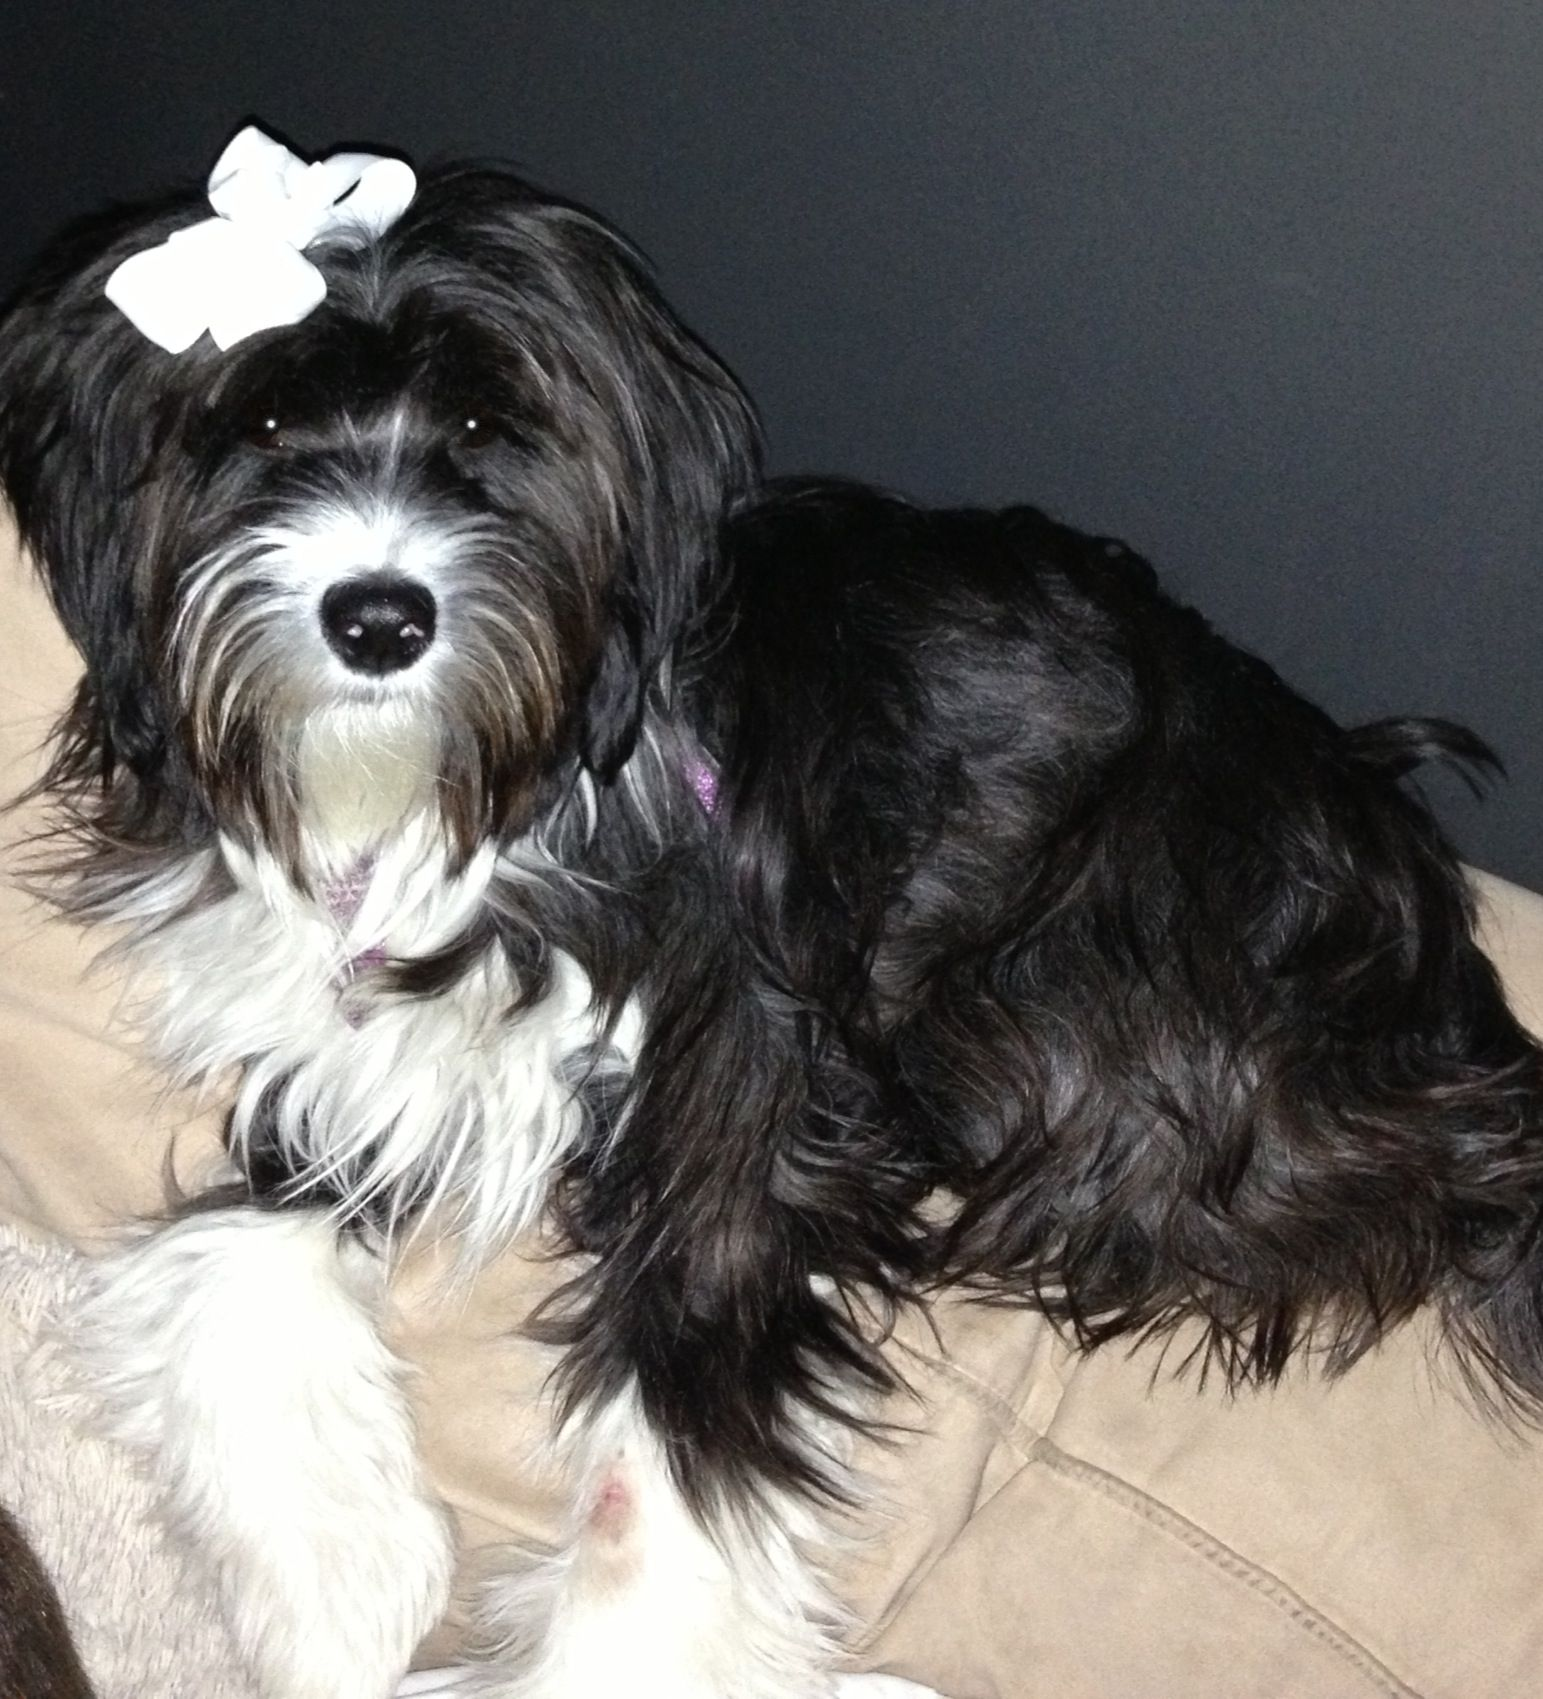 Tibetan Terrier Dalai Grace 7 Months Old She Is Growing Up So